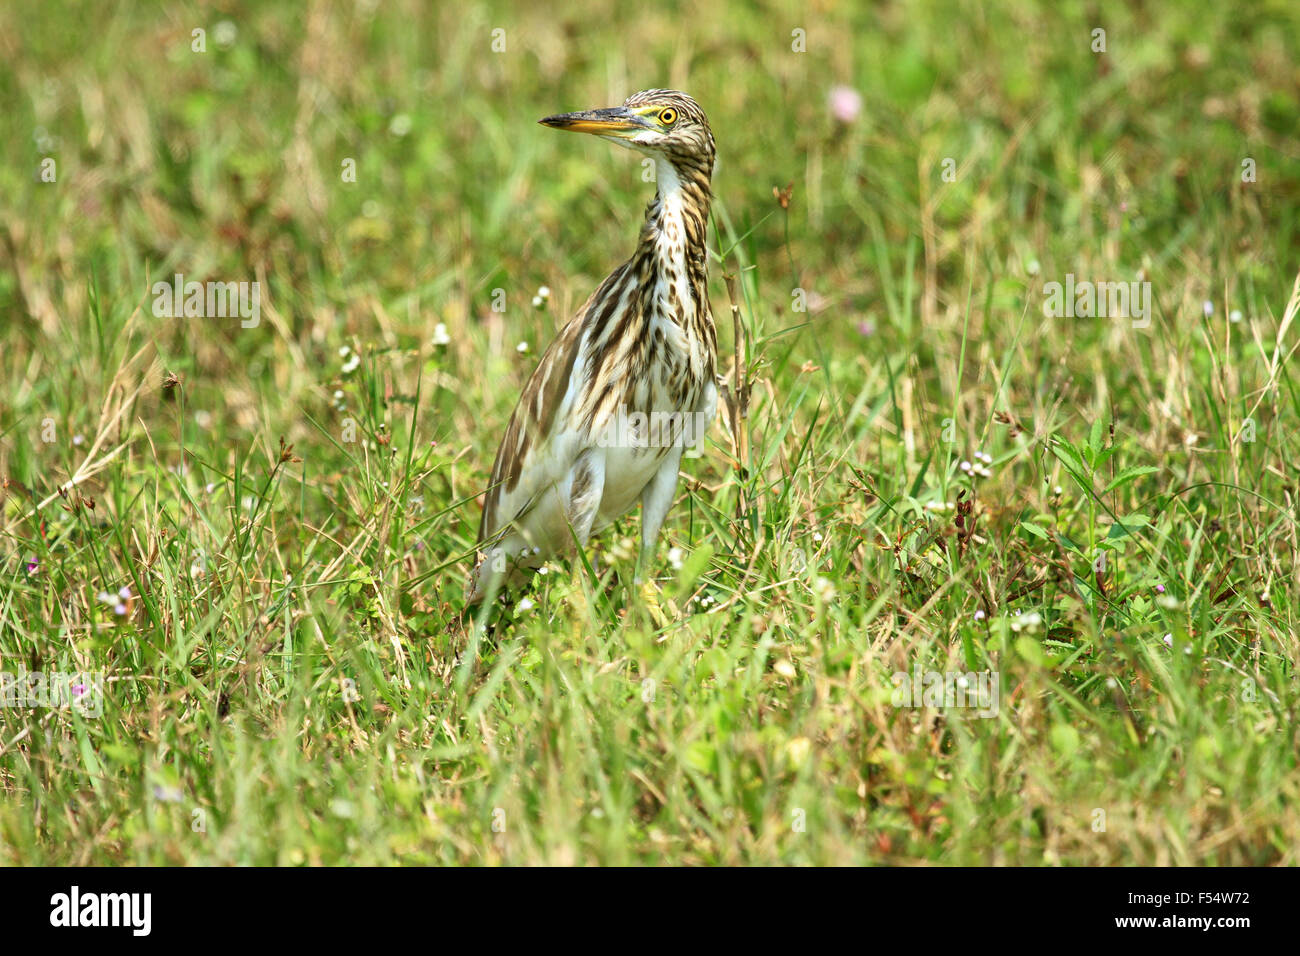 The Indian pond heron or paddybird (Ardeola grayii) is a small heron. - Stock Image